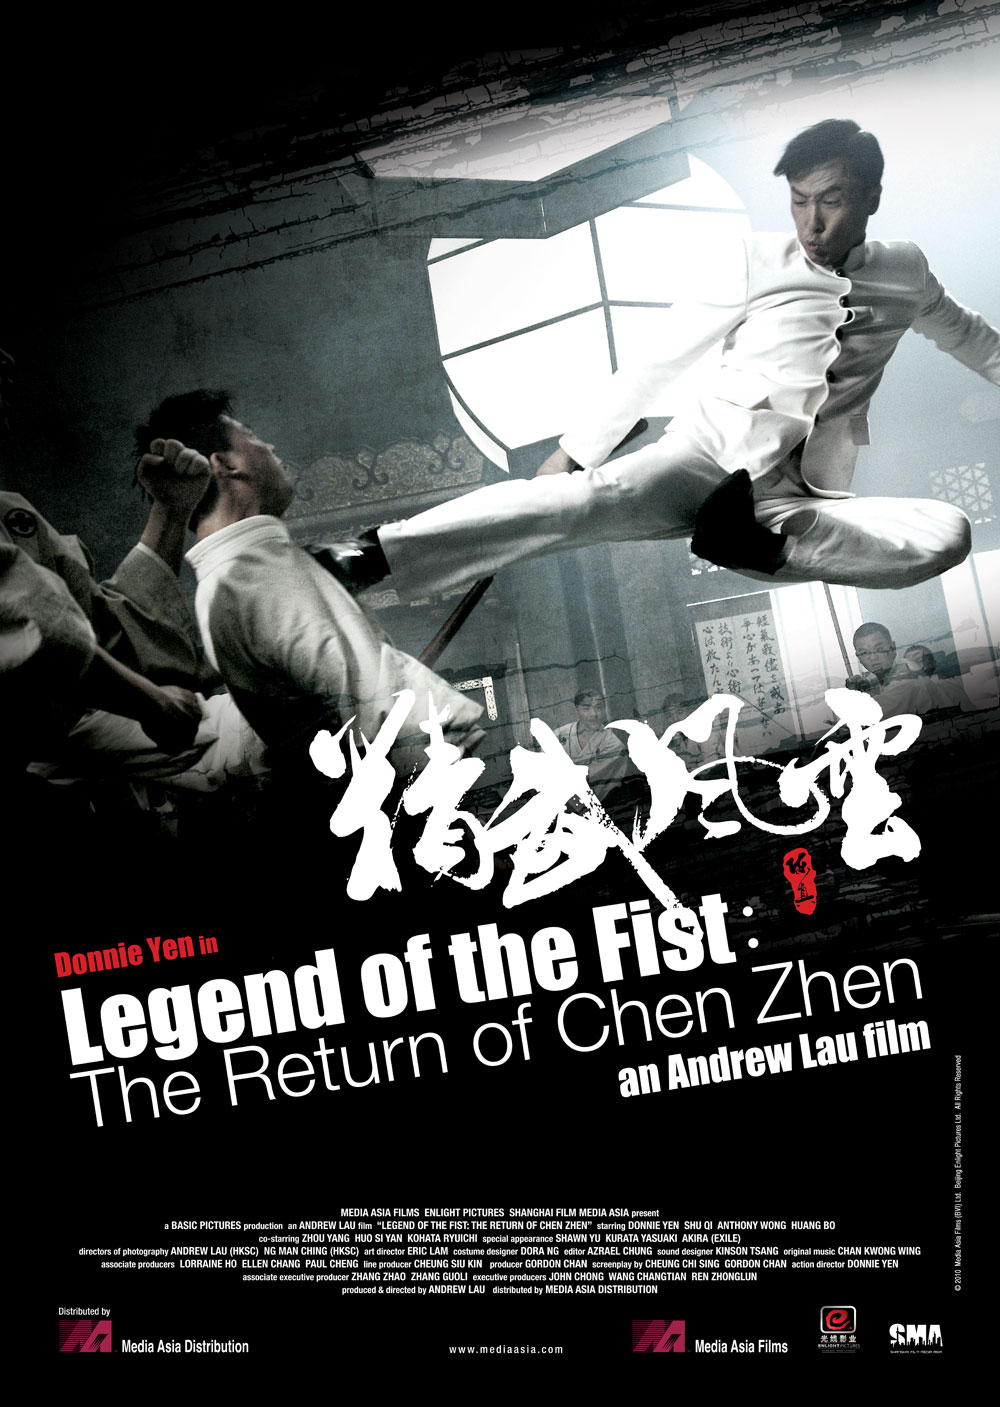 Кулак легенды: Возвращение Чен Жена / Legend of the Fist: The Return of Chen Zhen / Jing mo fung wan: Chen Zhen (2010) BDRip